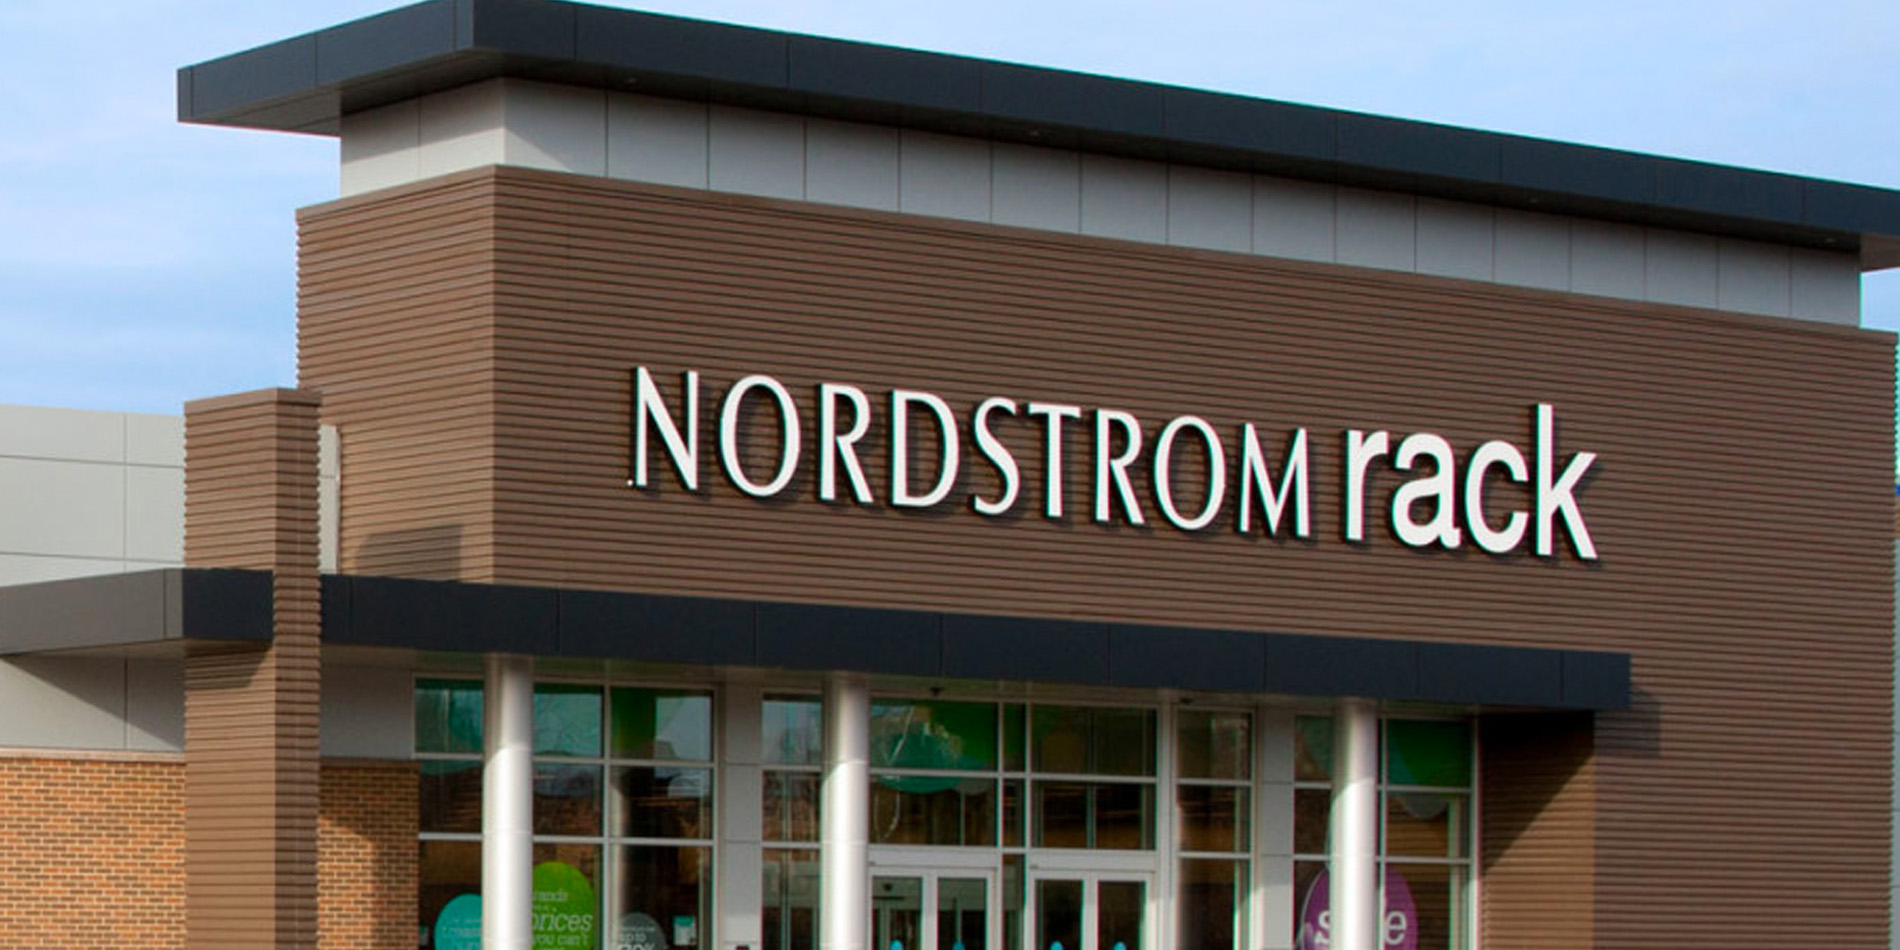 7 items · From Business: Nordstrom Rack, the off-price division of Nordstrom, Inc., serves up fashion at a fraction for the whole family and your home—and has for 40 years.